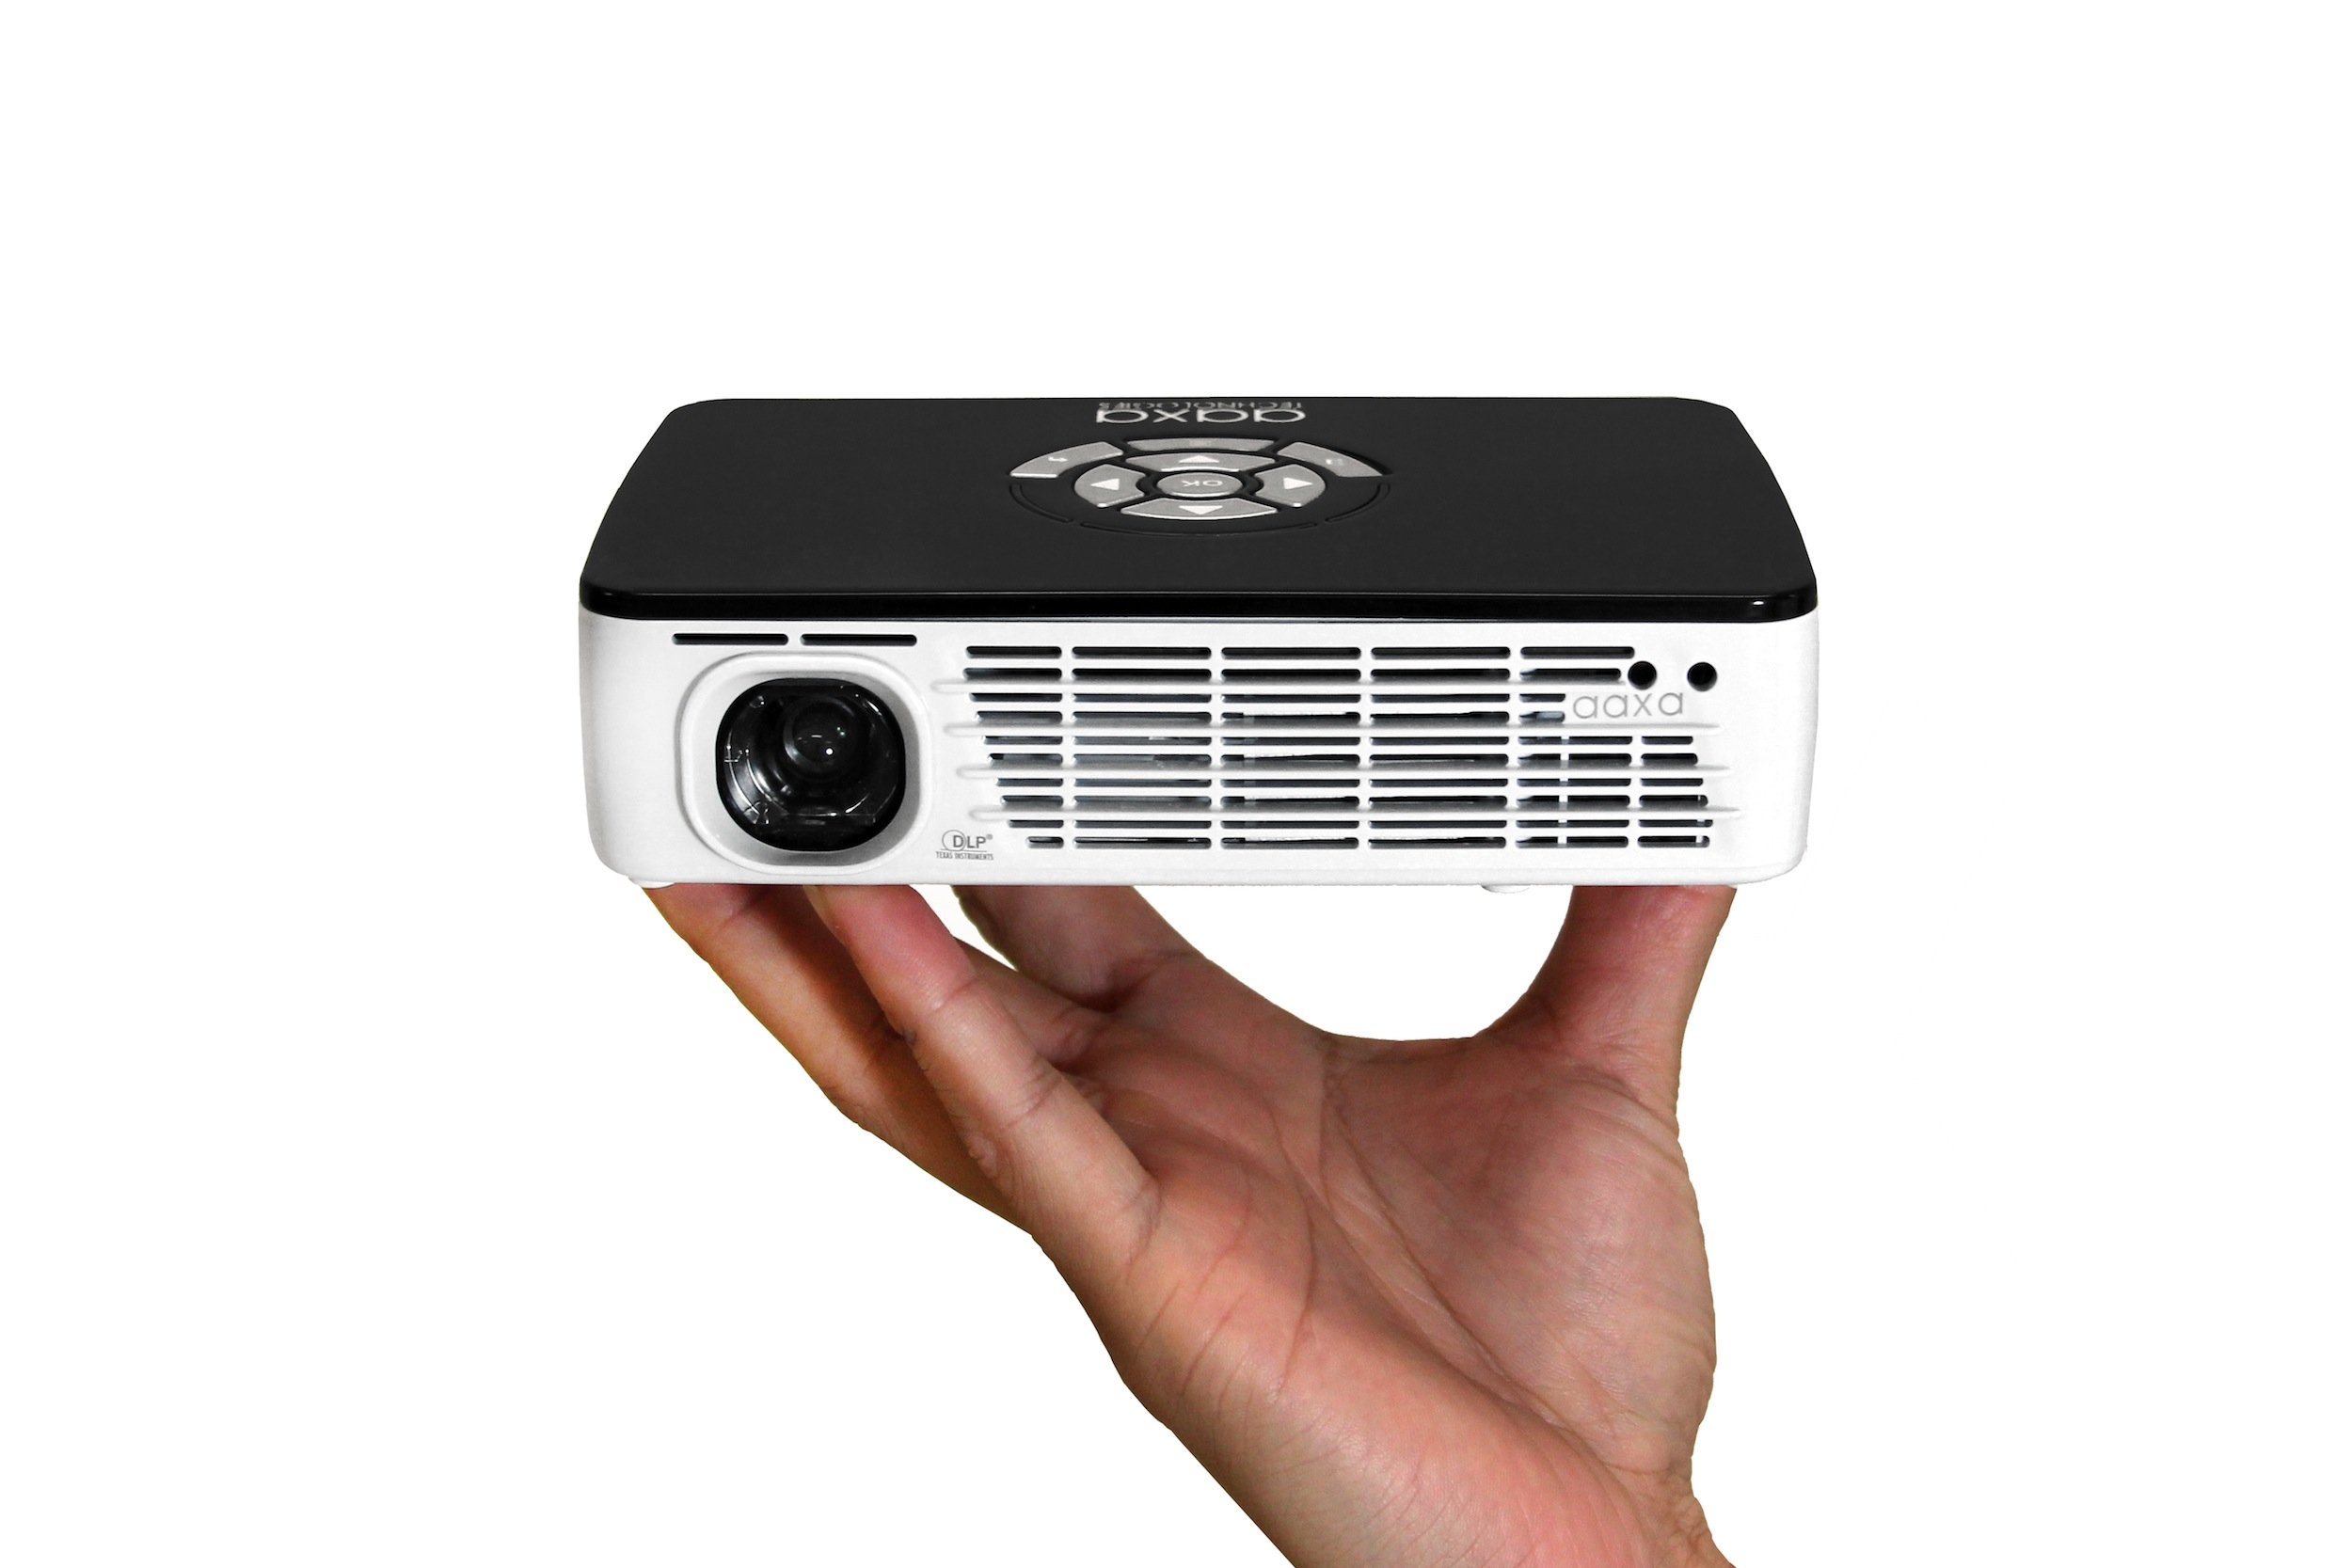 AAXA P300 Pico/Micro LED Projector with 60 Minute Battery Life, WXGA 1280x800 Resolution, 400 Lumens, HDMI, Mini-VGA, 20,000 Hour LED Life, Media Player by AAXA Technologies